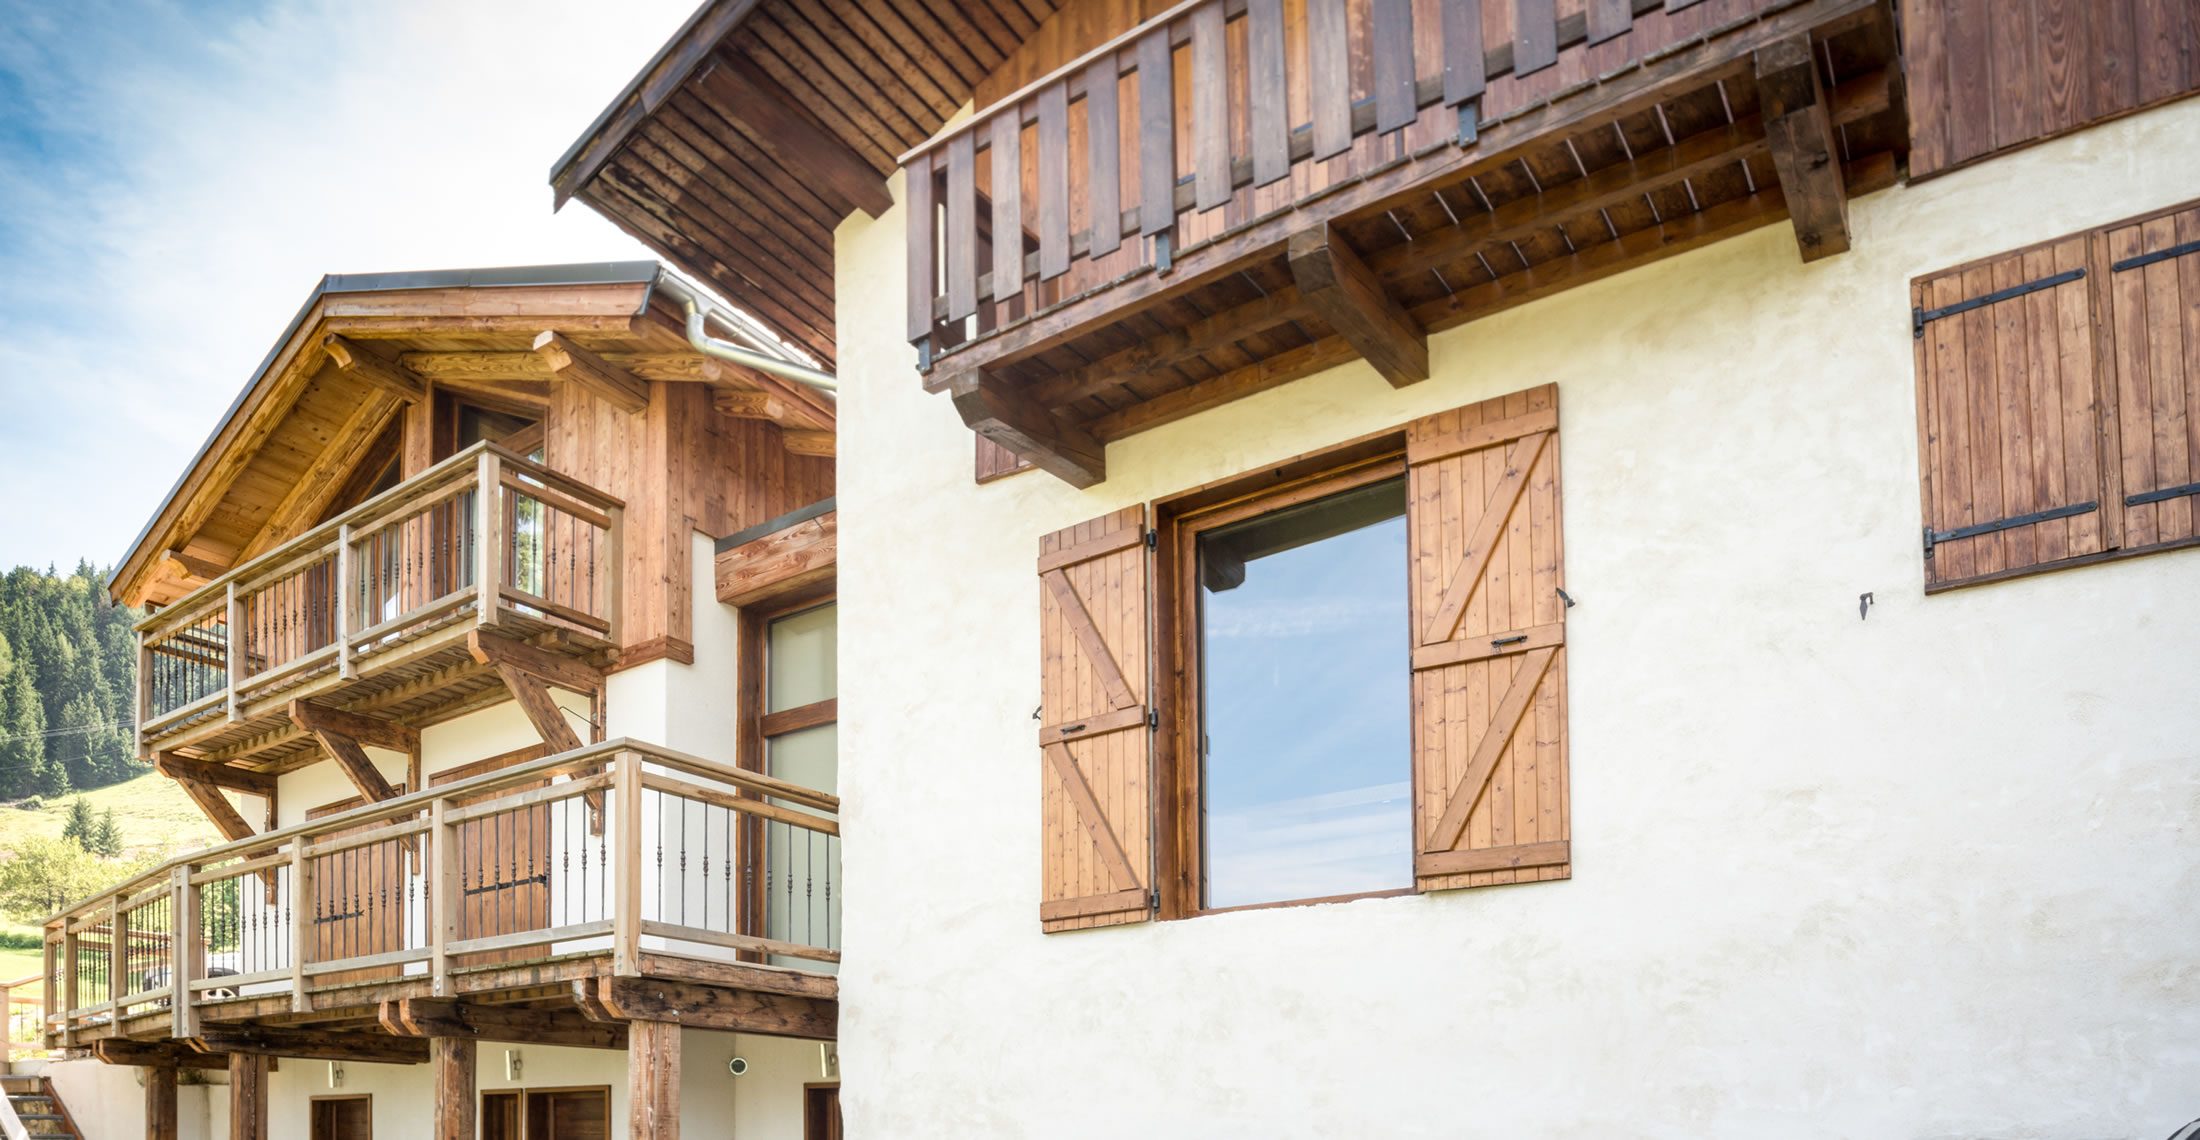 Chalet Construction in Les Trois Vallees